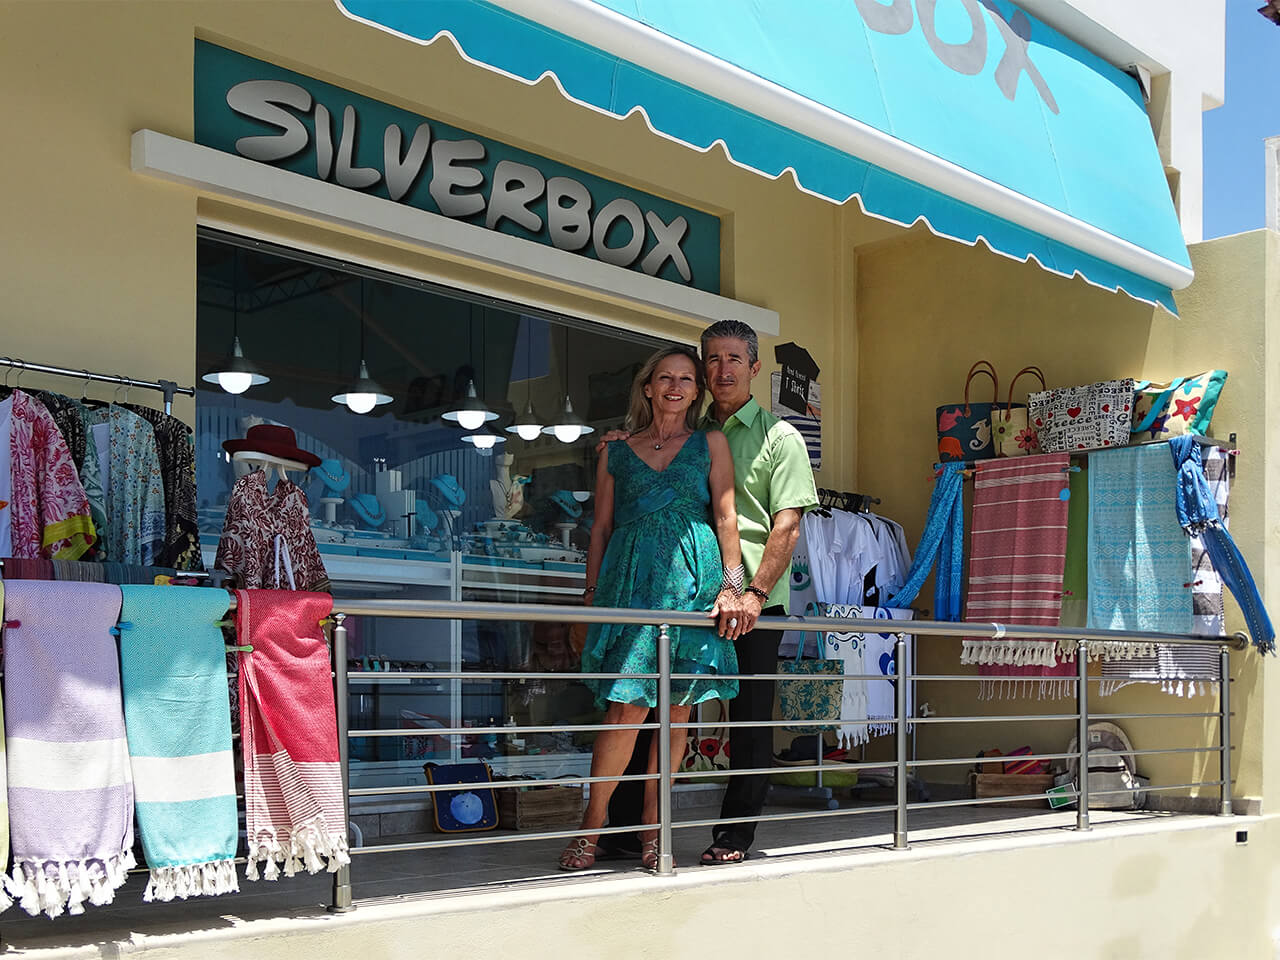 silverbox-003